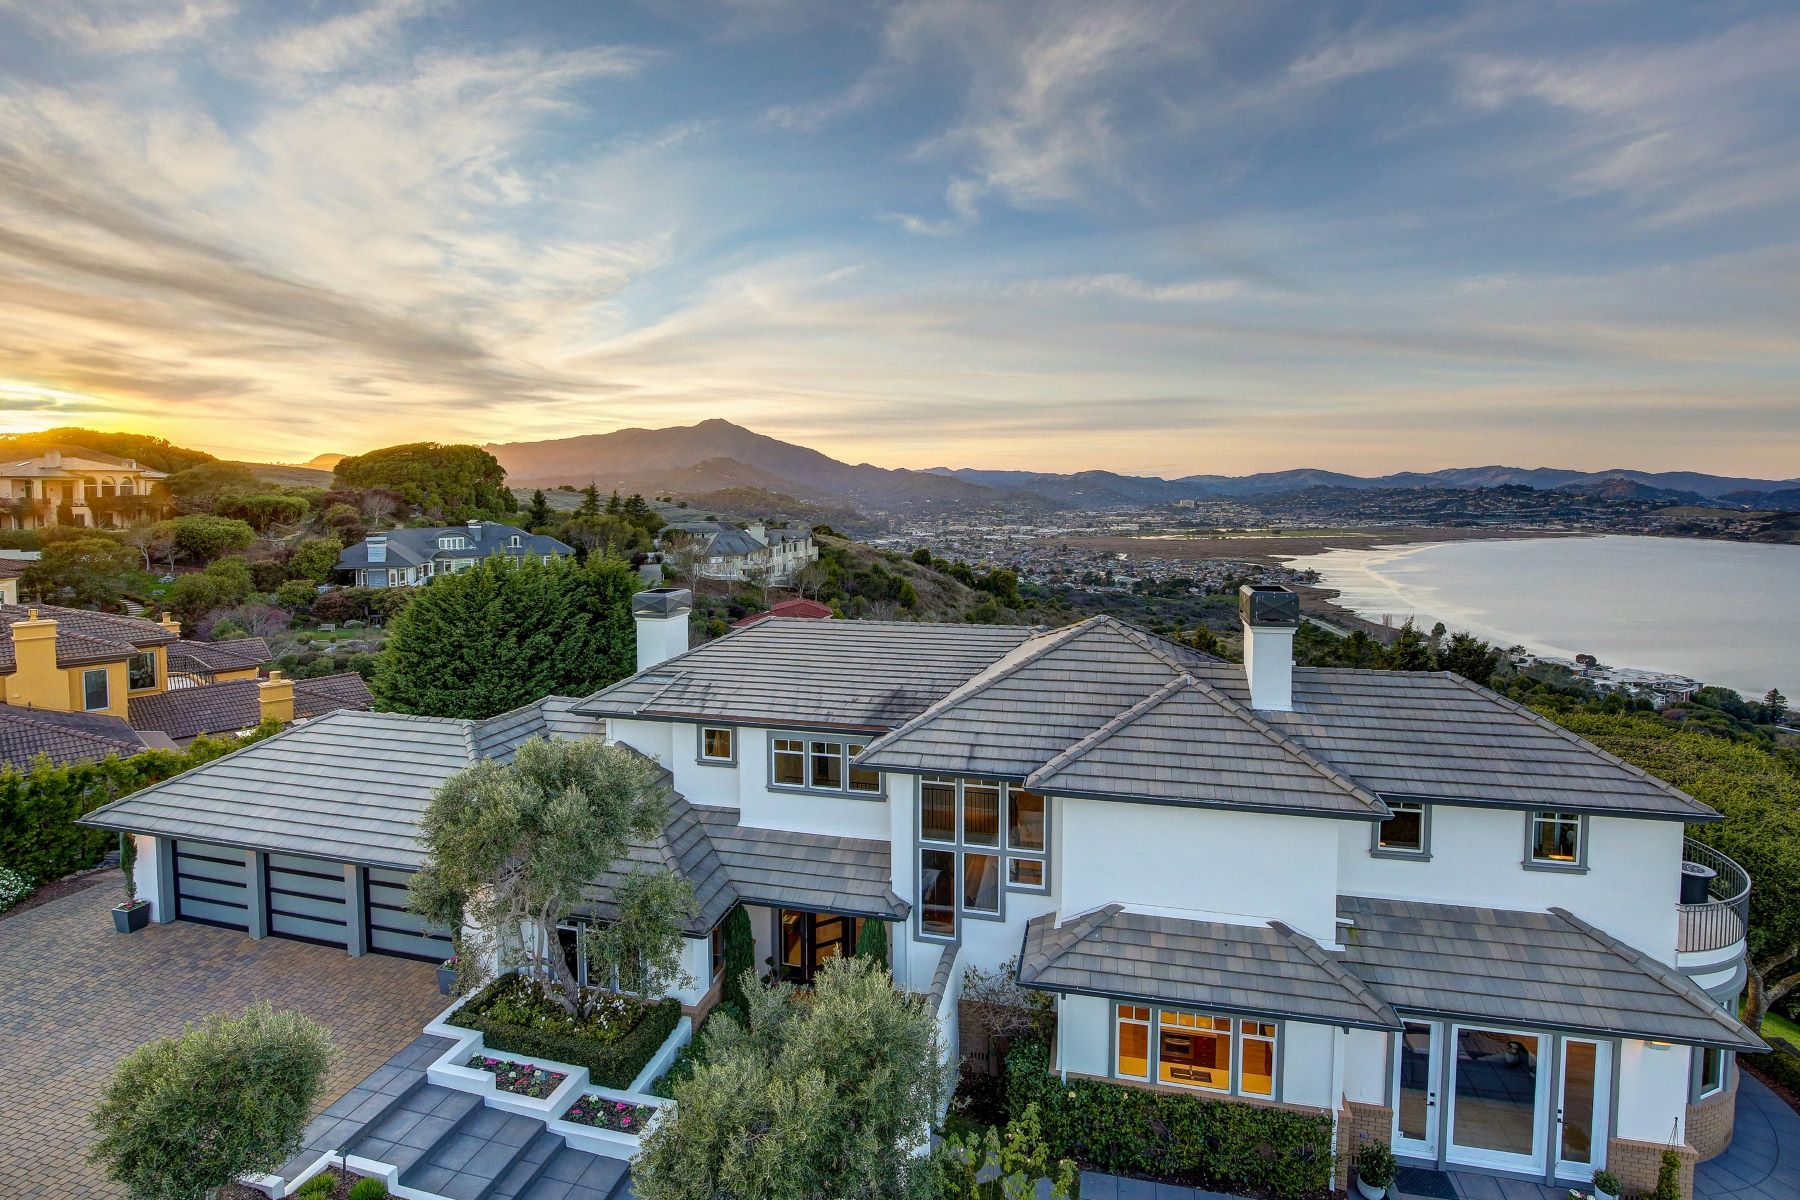 Single Family Homes for Sale at Incredible View Estate 205 Taylor Road Tiburon, California 94920 United States